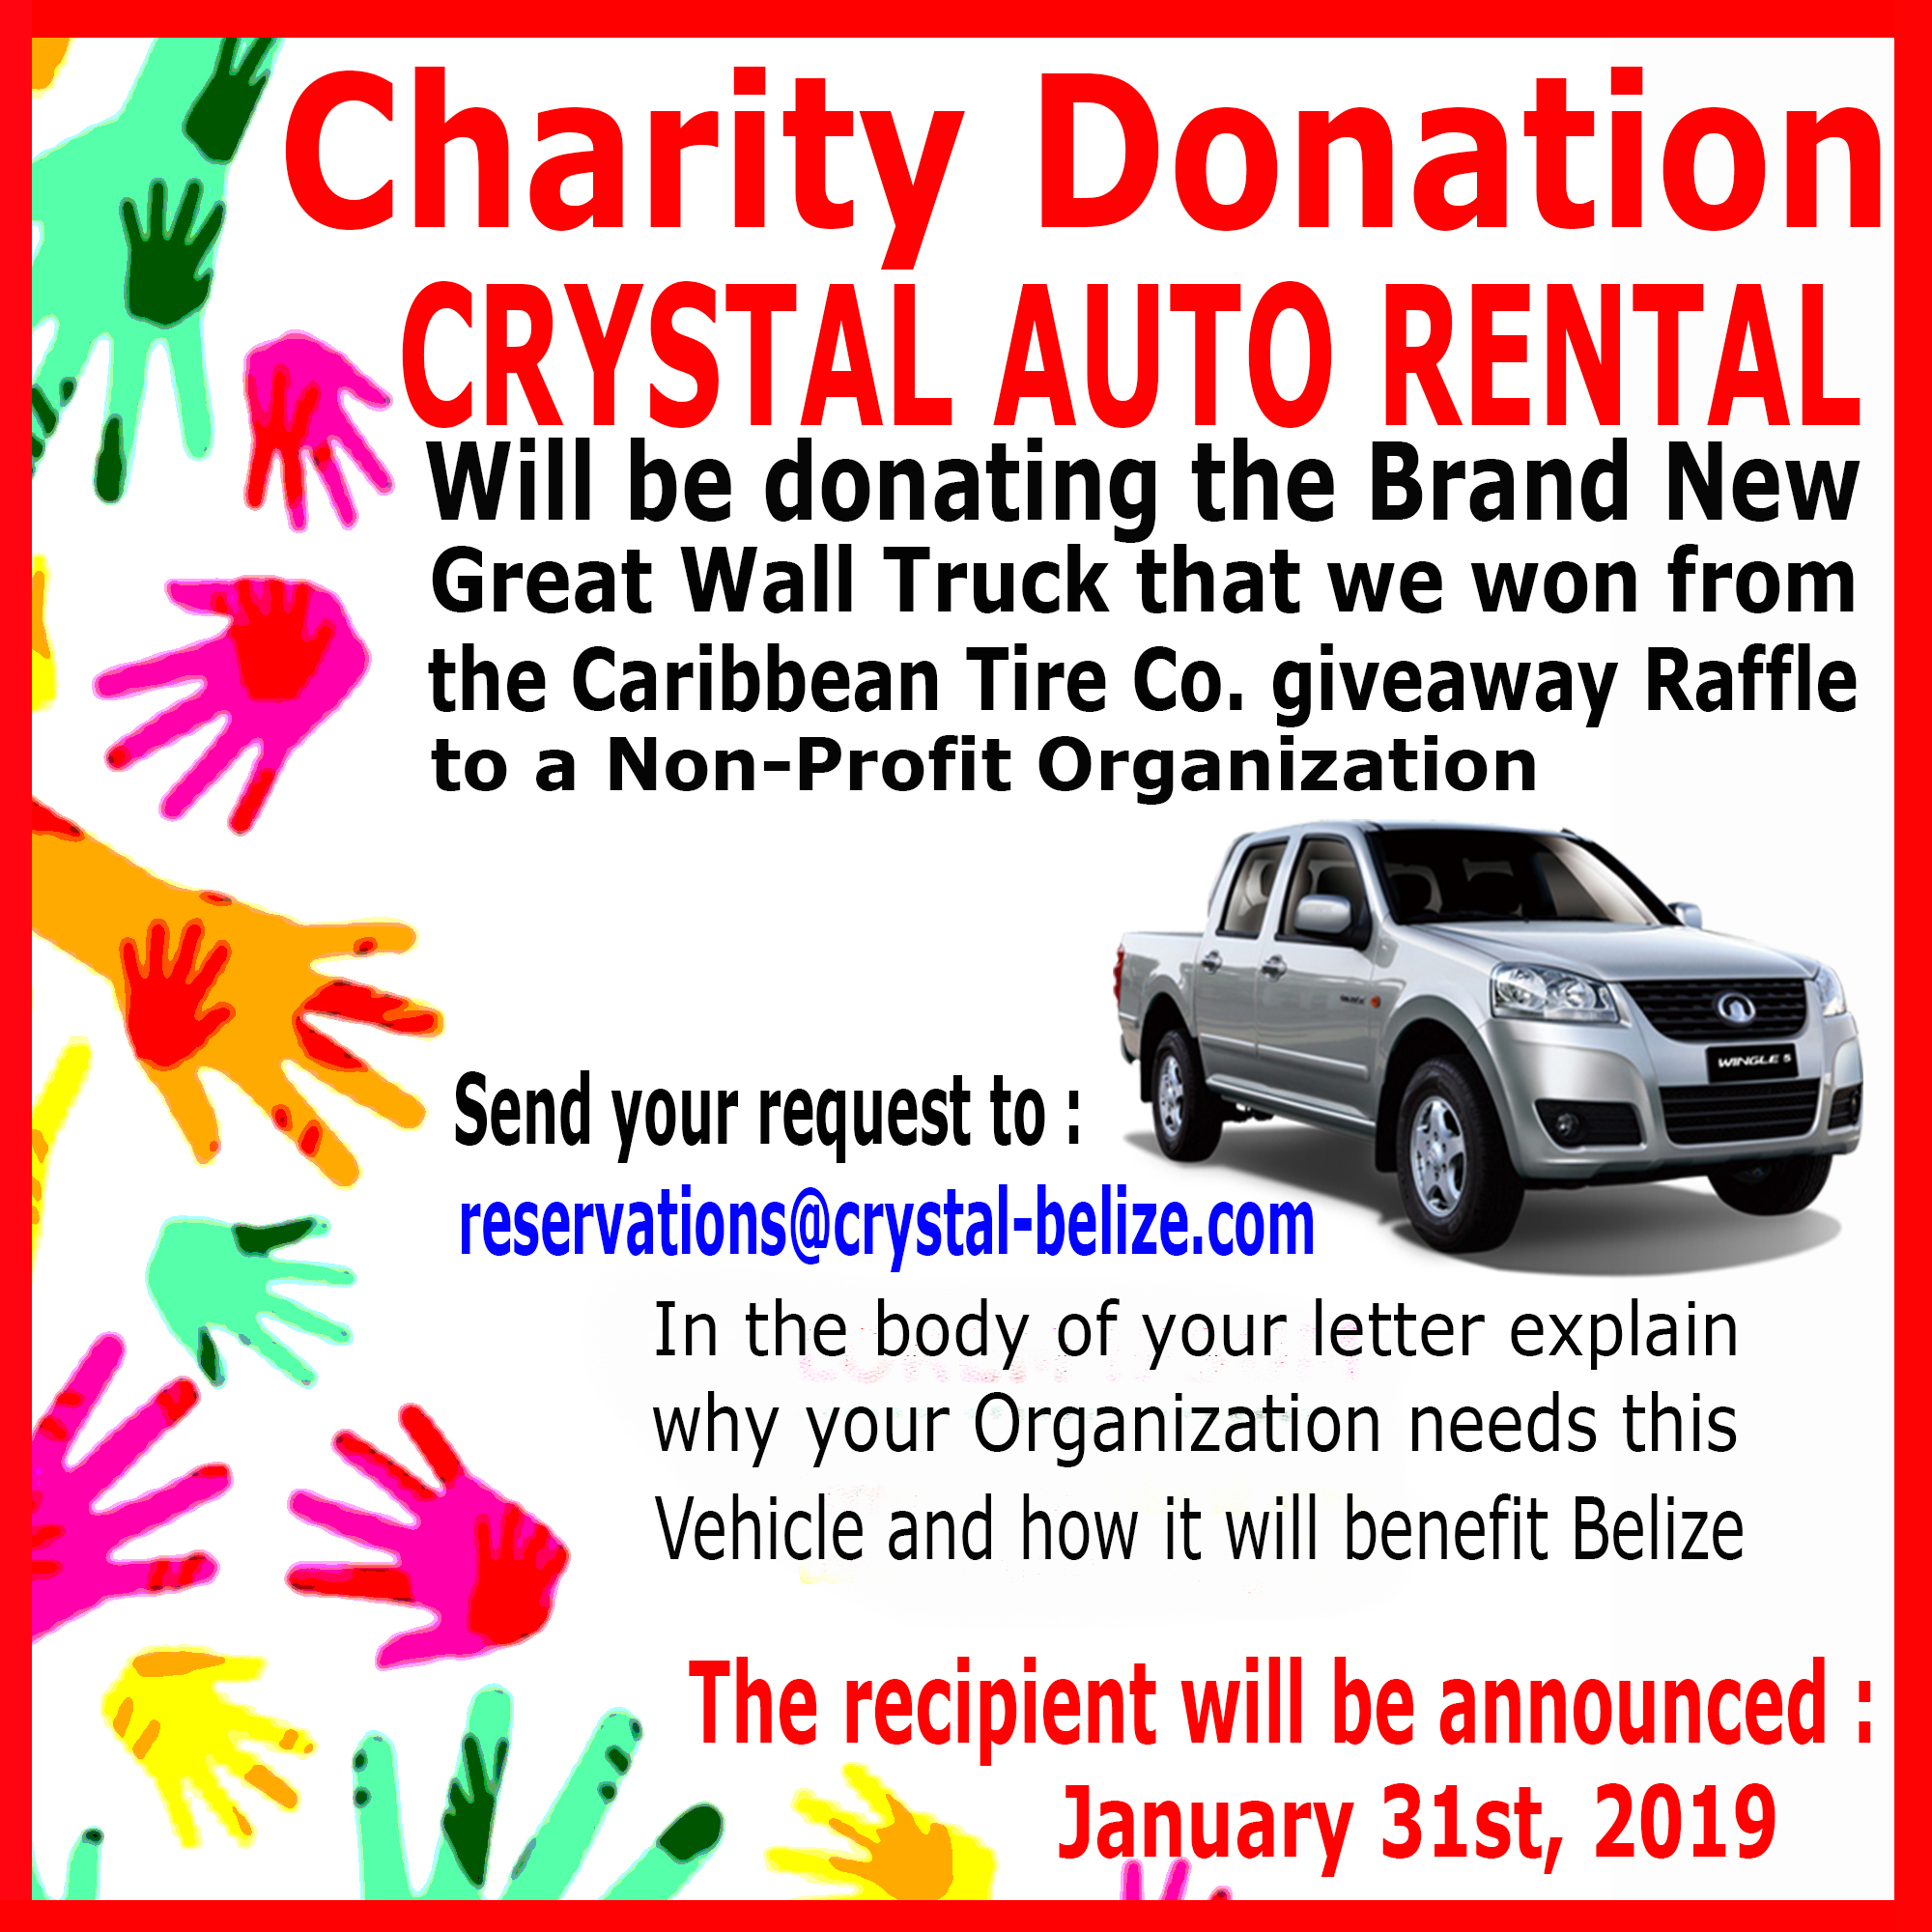 Crystal Auto Rental Donation